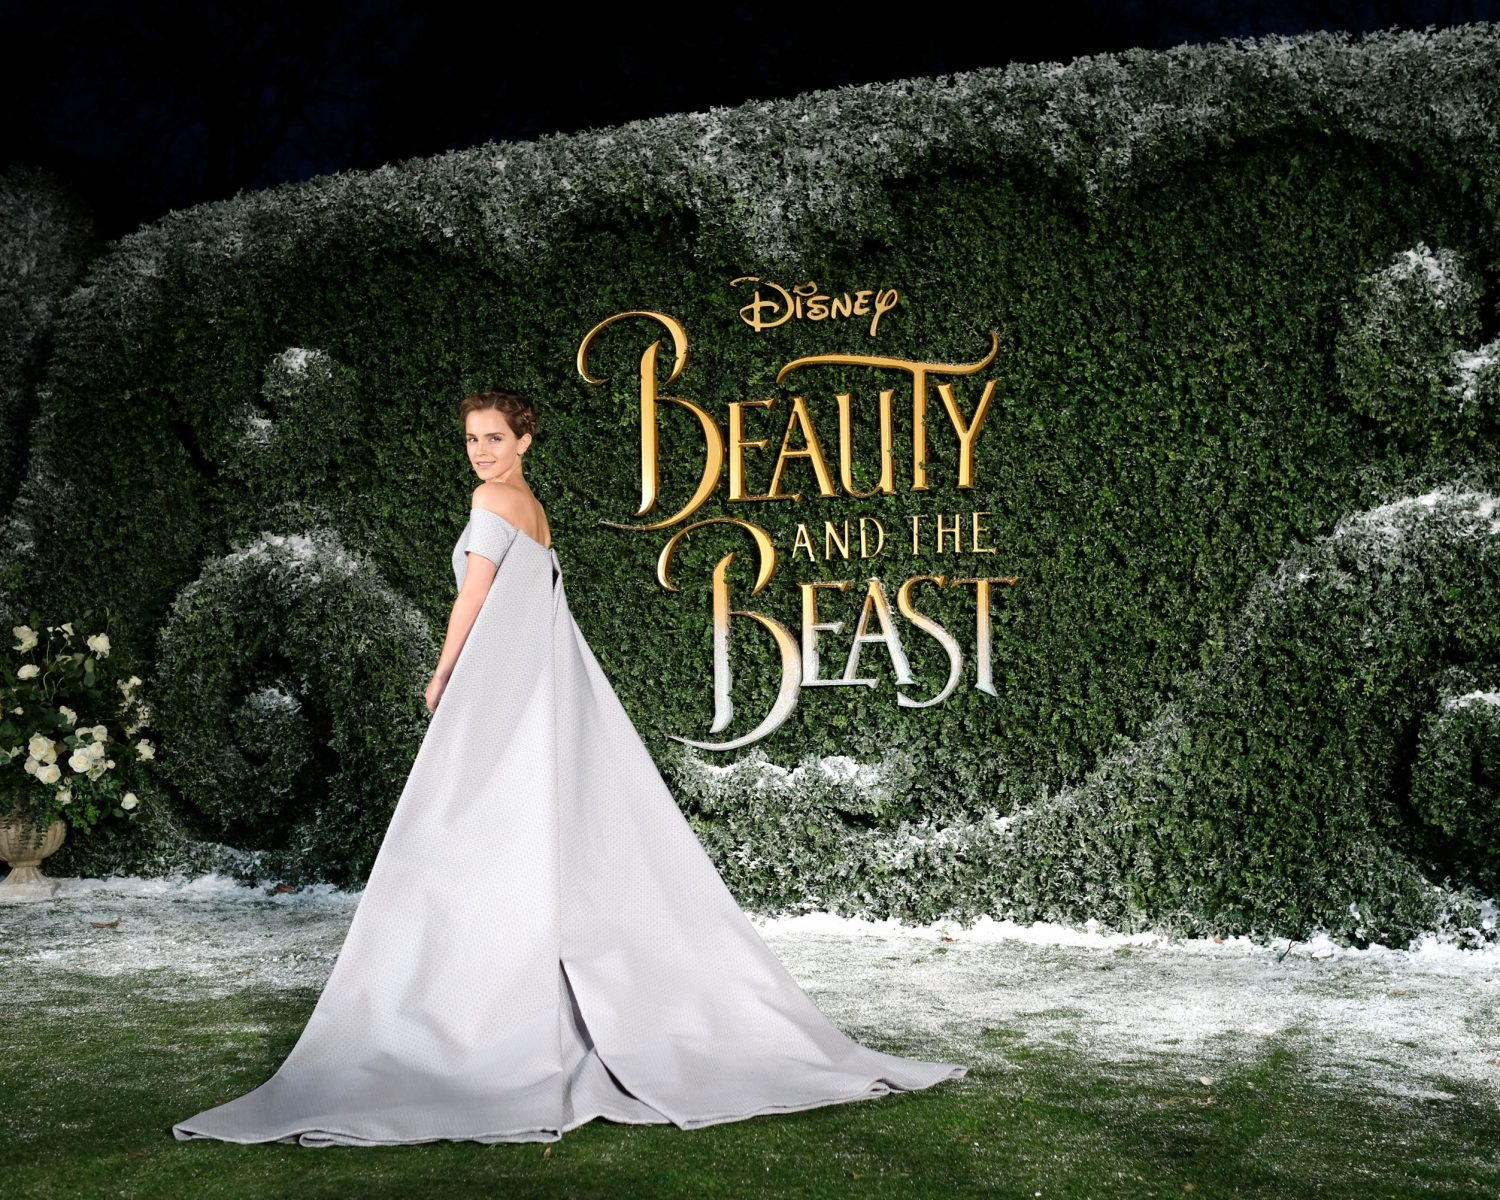 Emma Watsons Beauty And The Beast Red Carpet Appearances